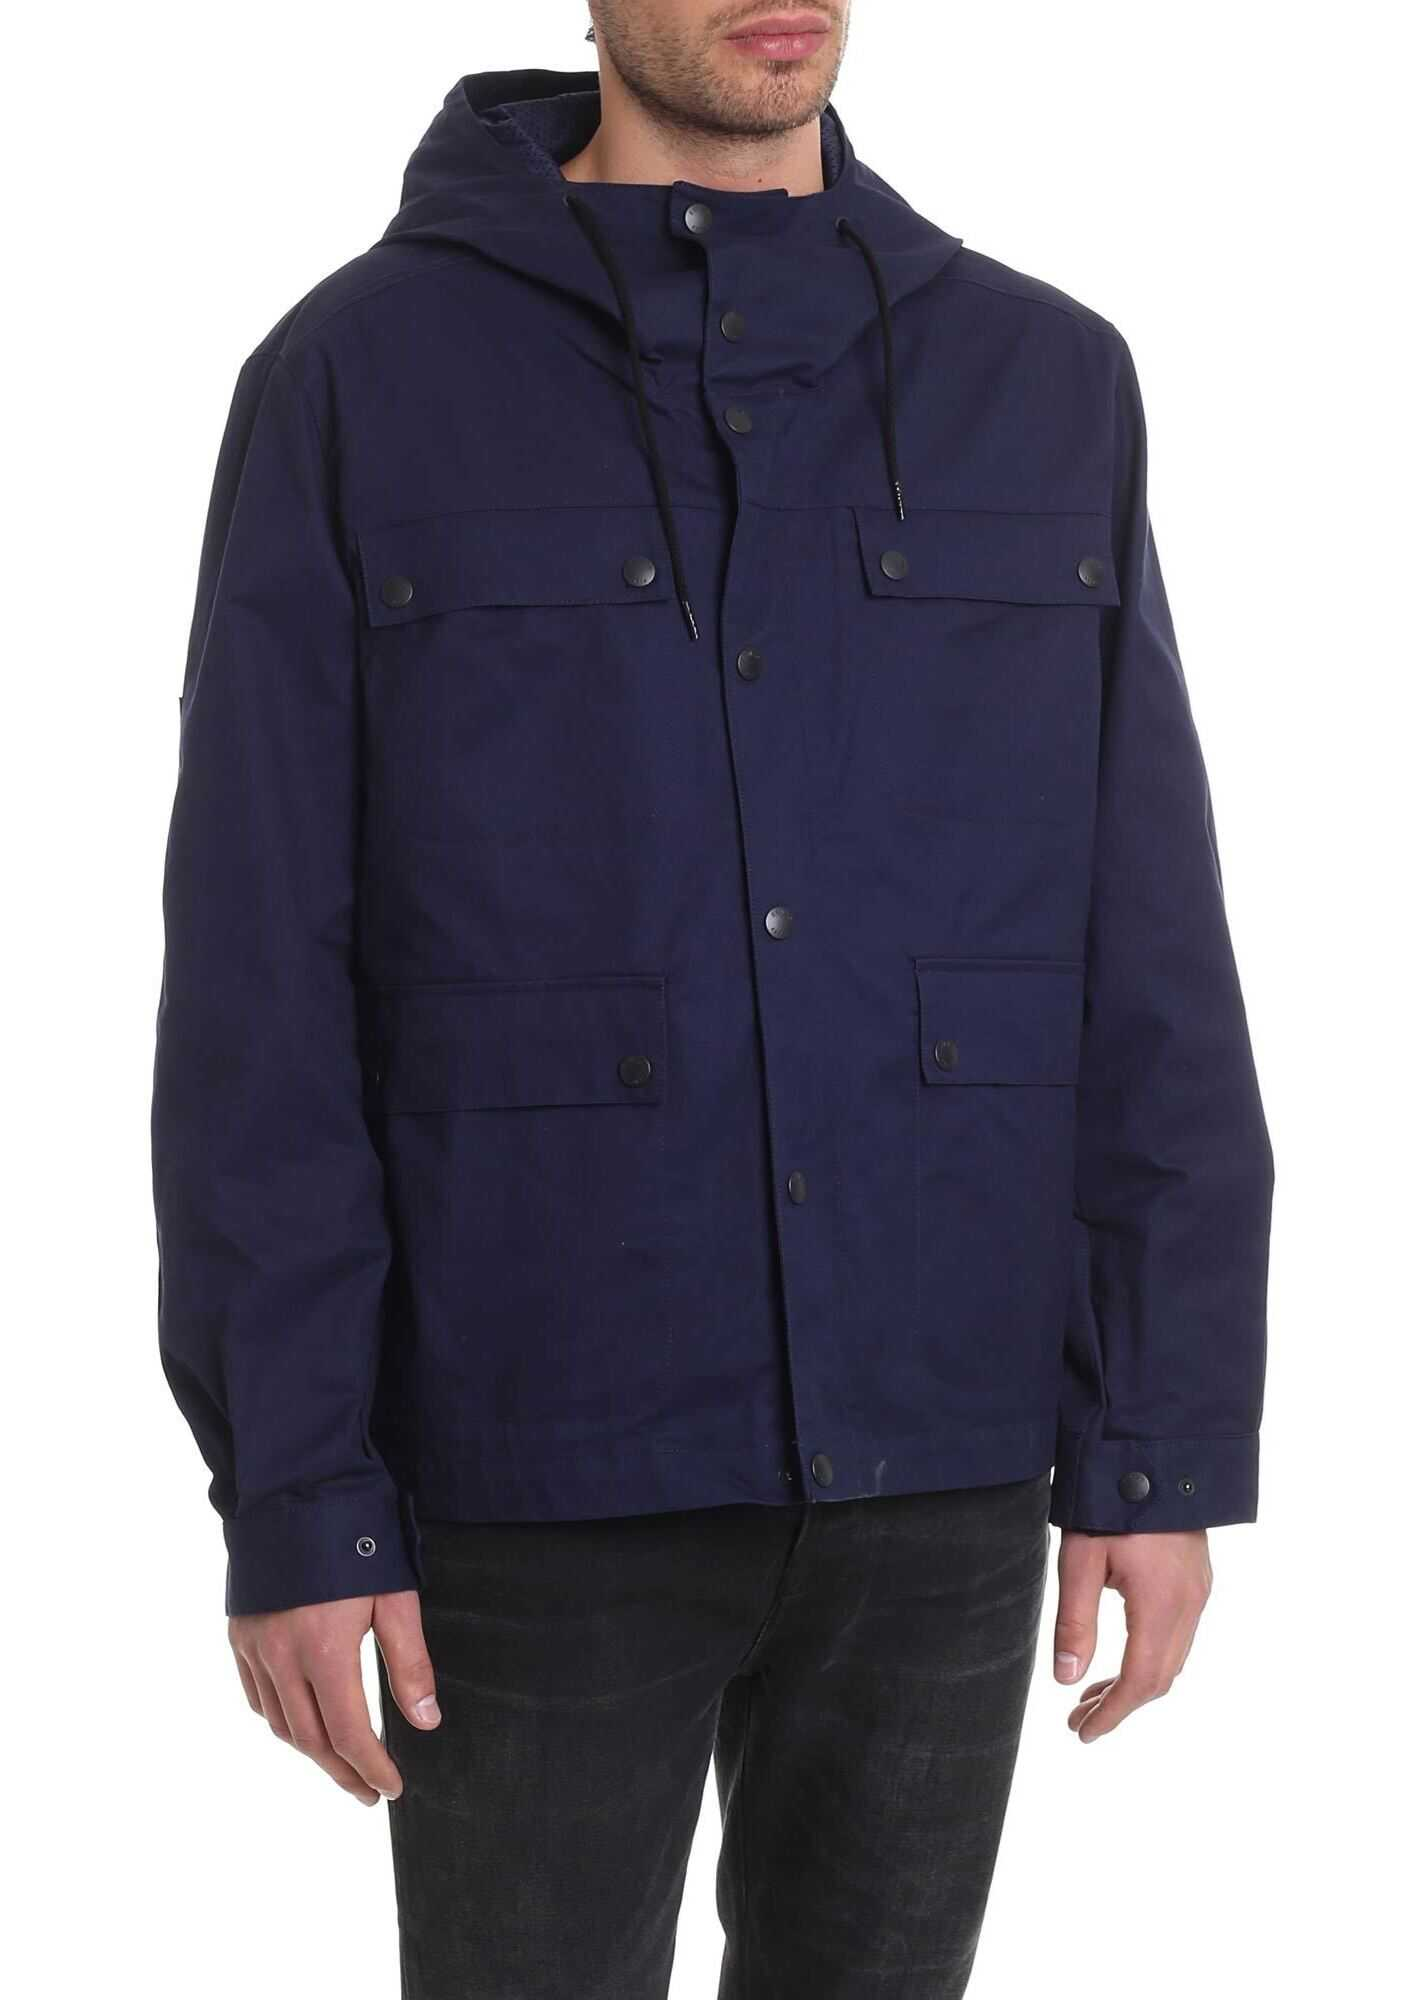 Kenzo Kenzo Sport Parka In Blue Blue imagine